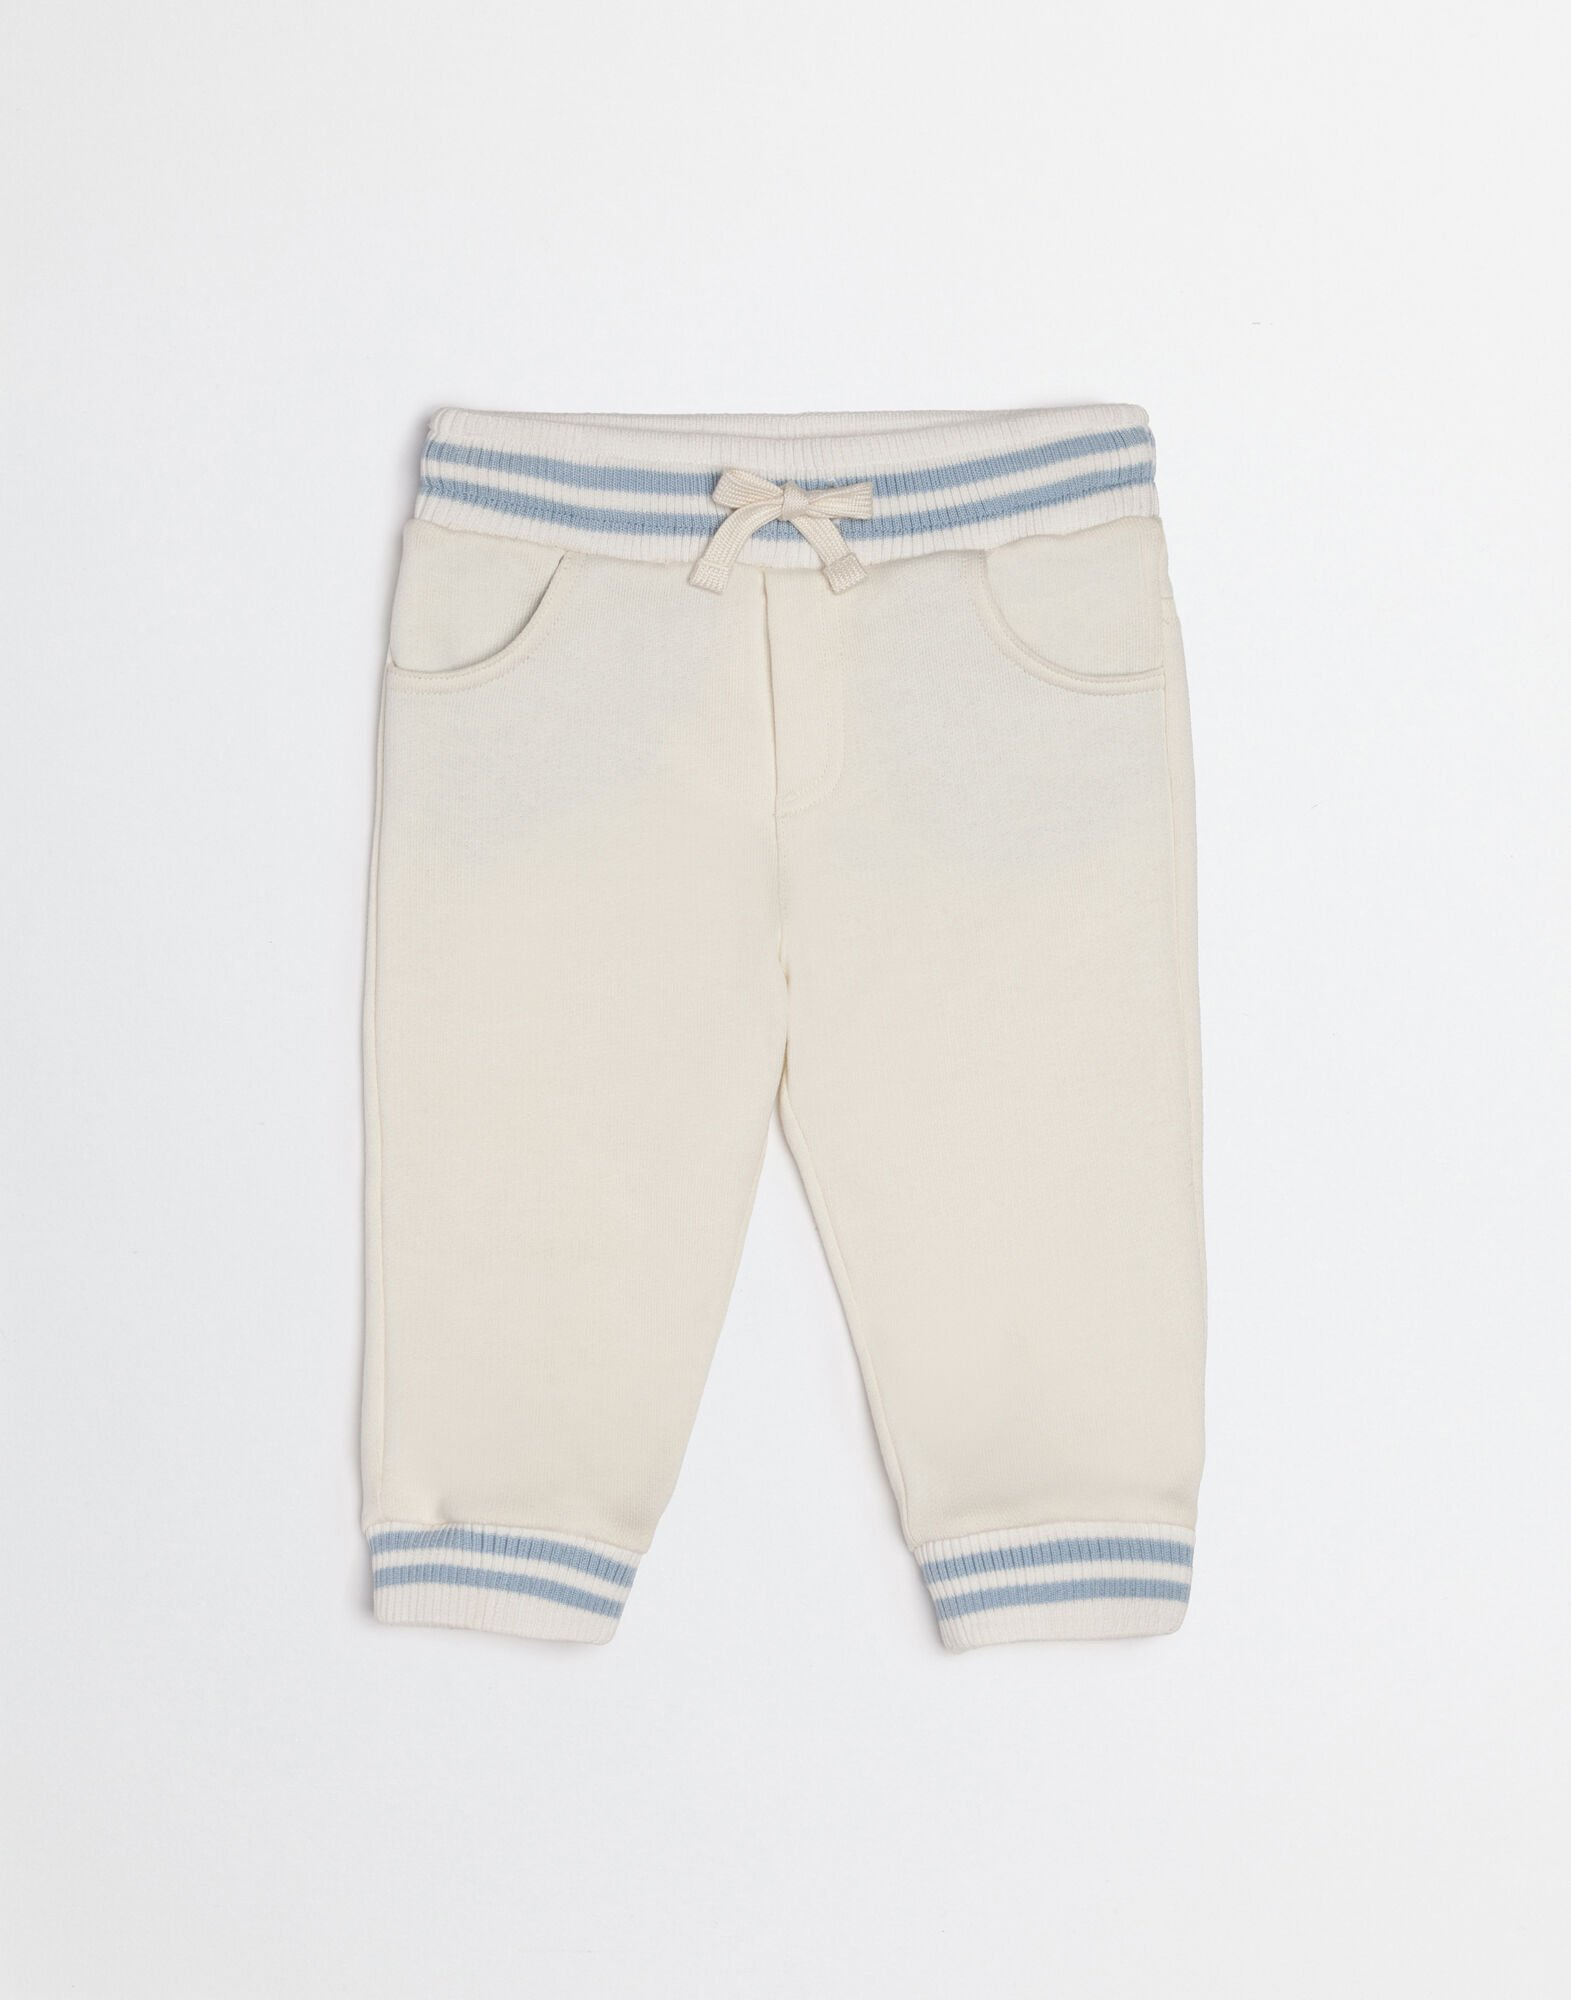 MIMMO THE DOG JOGGING PANTS